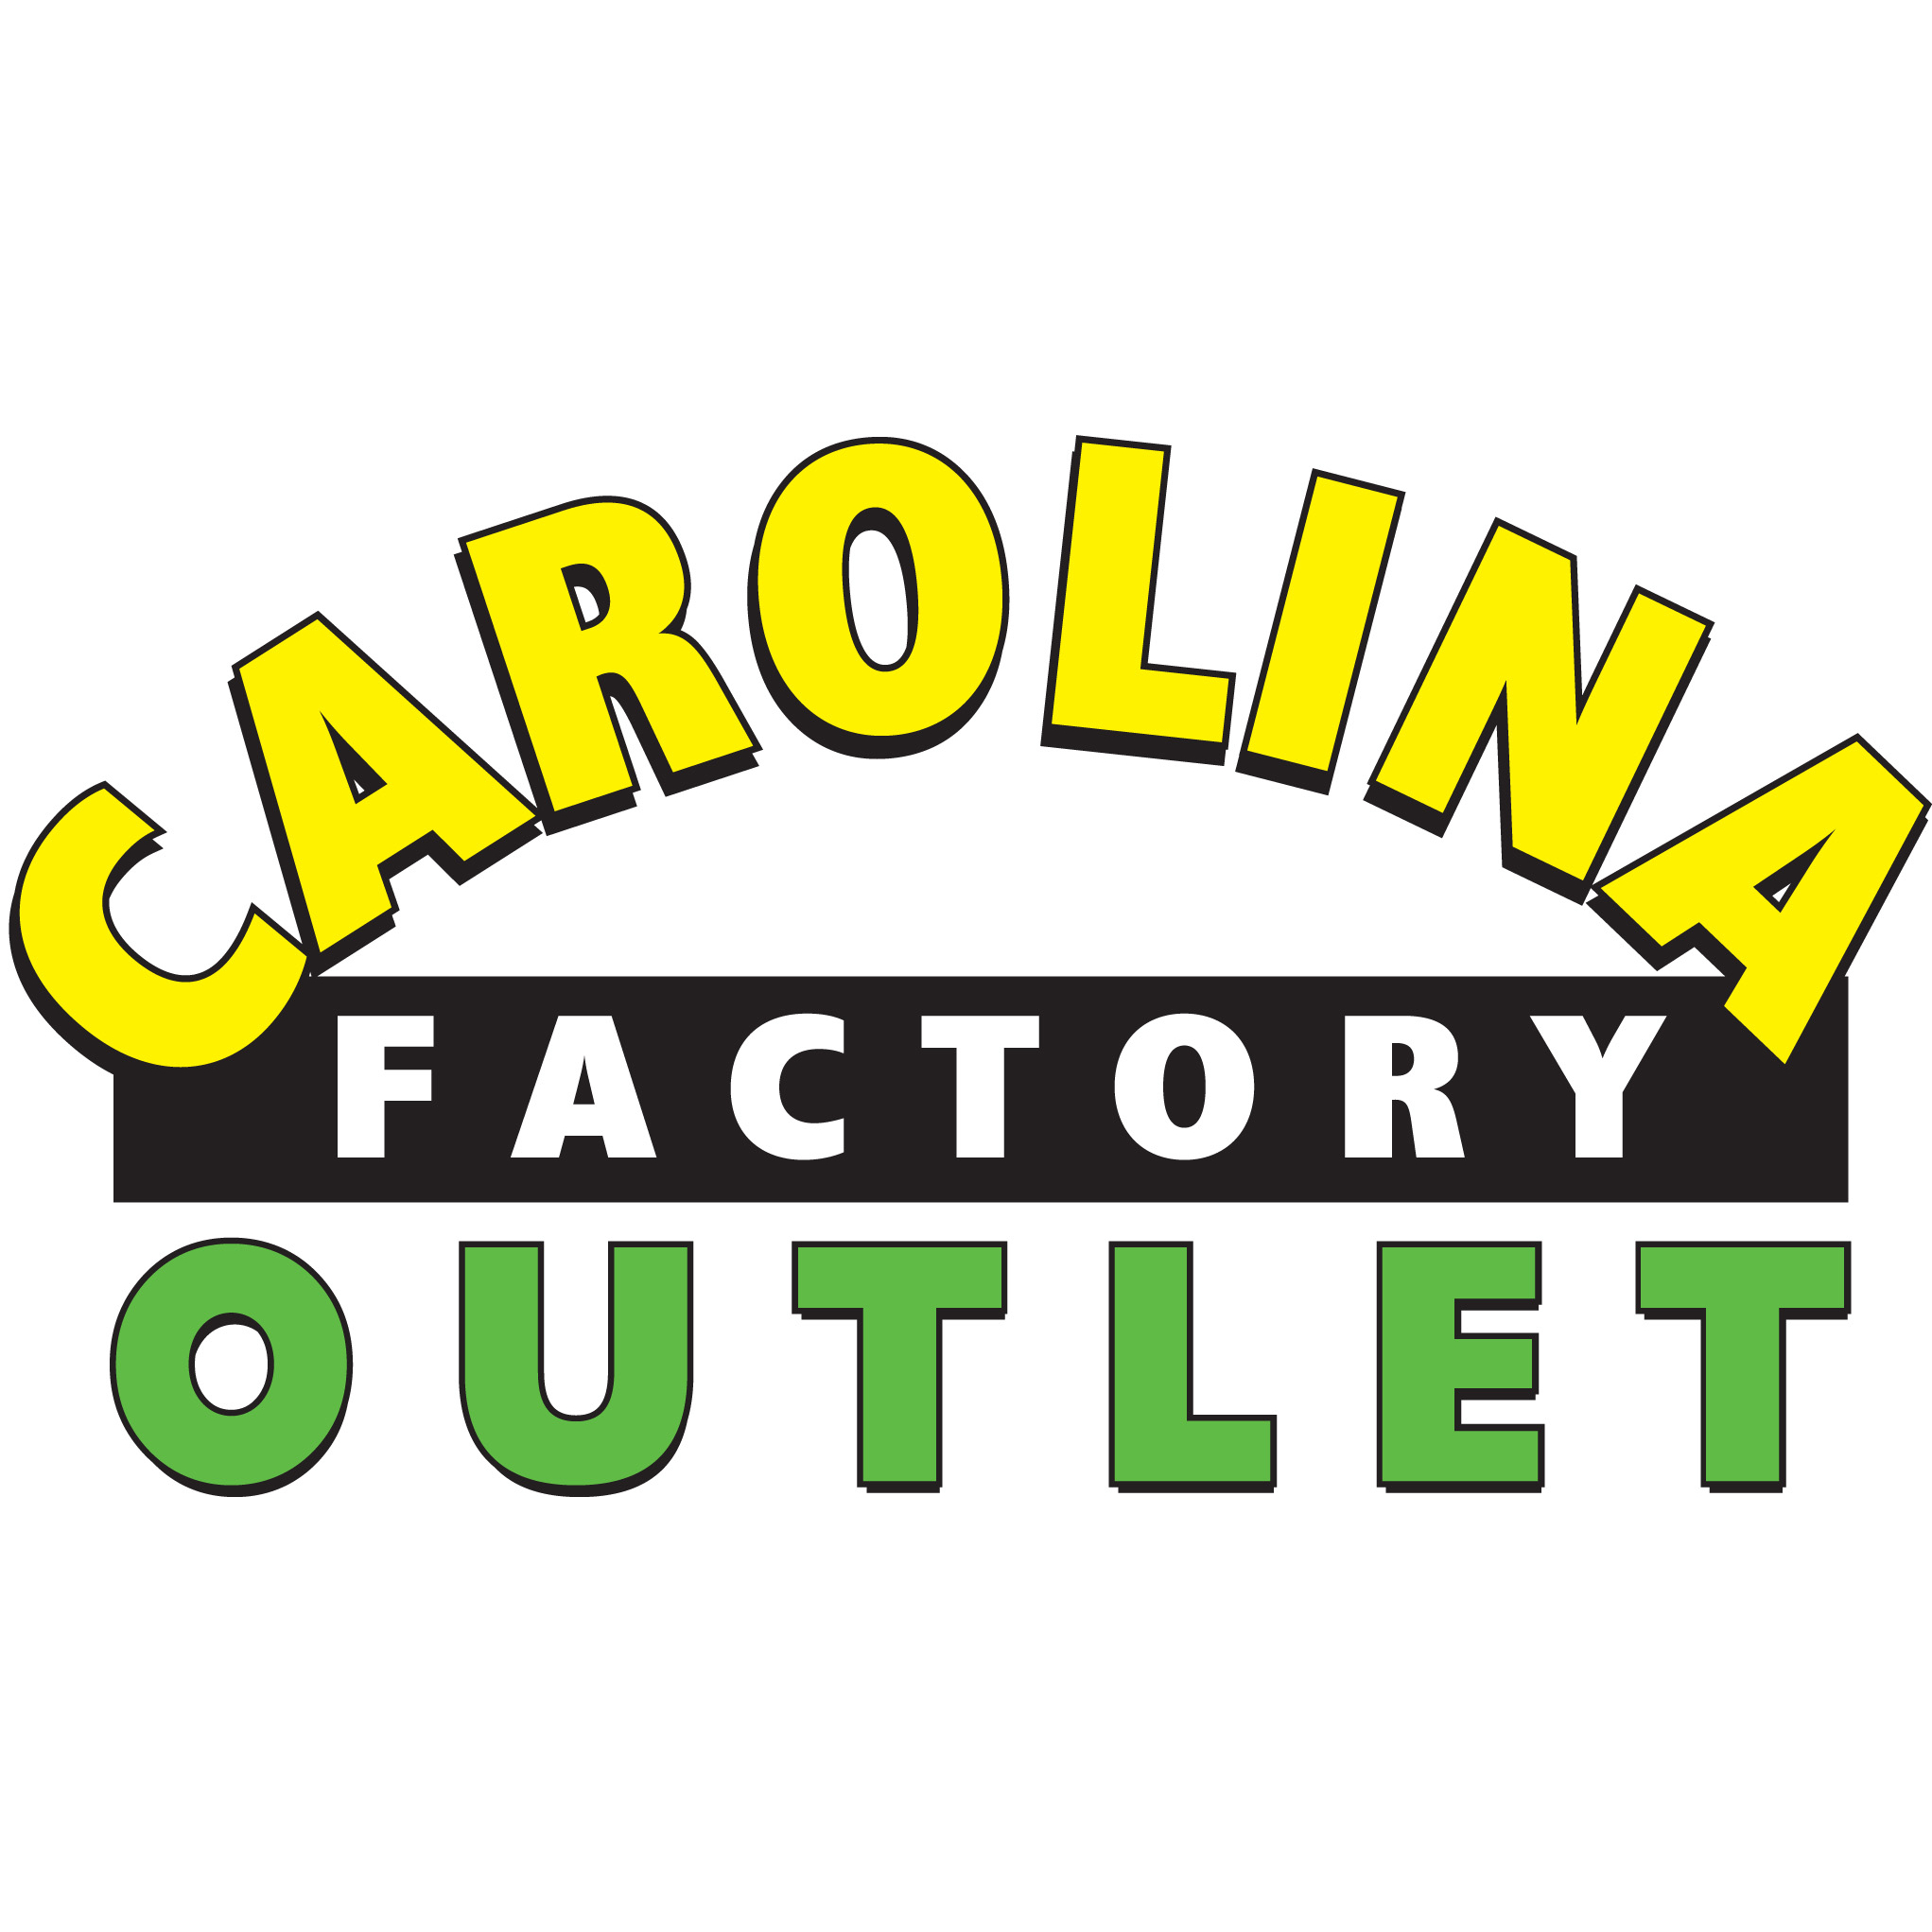 Carolina Factory Outlet image 4